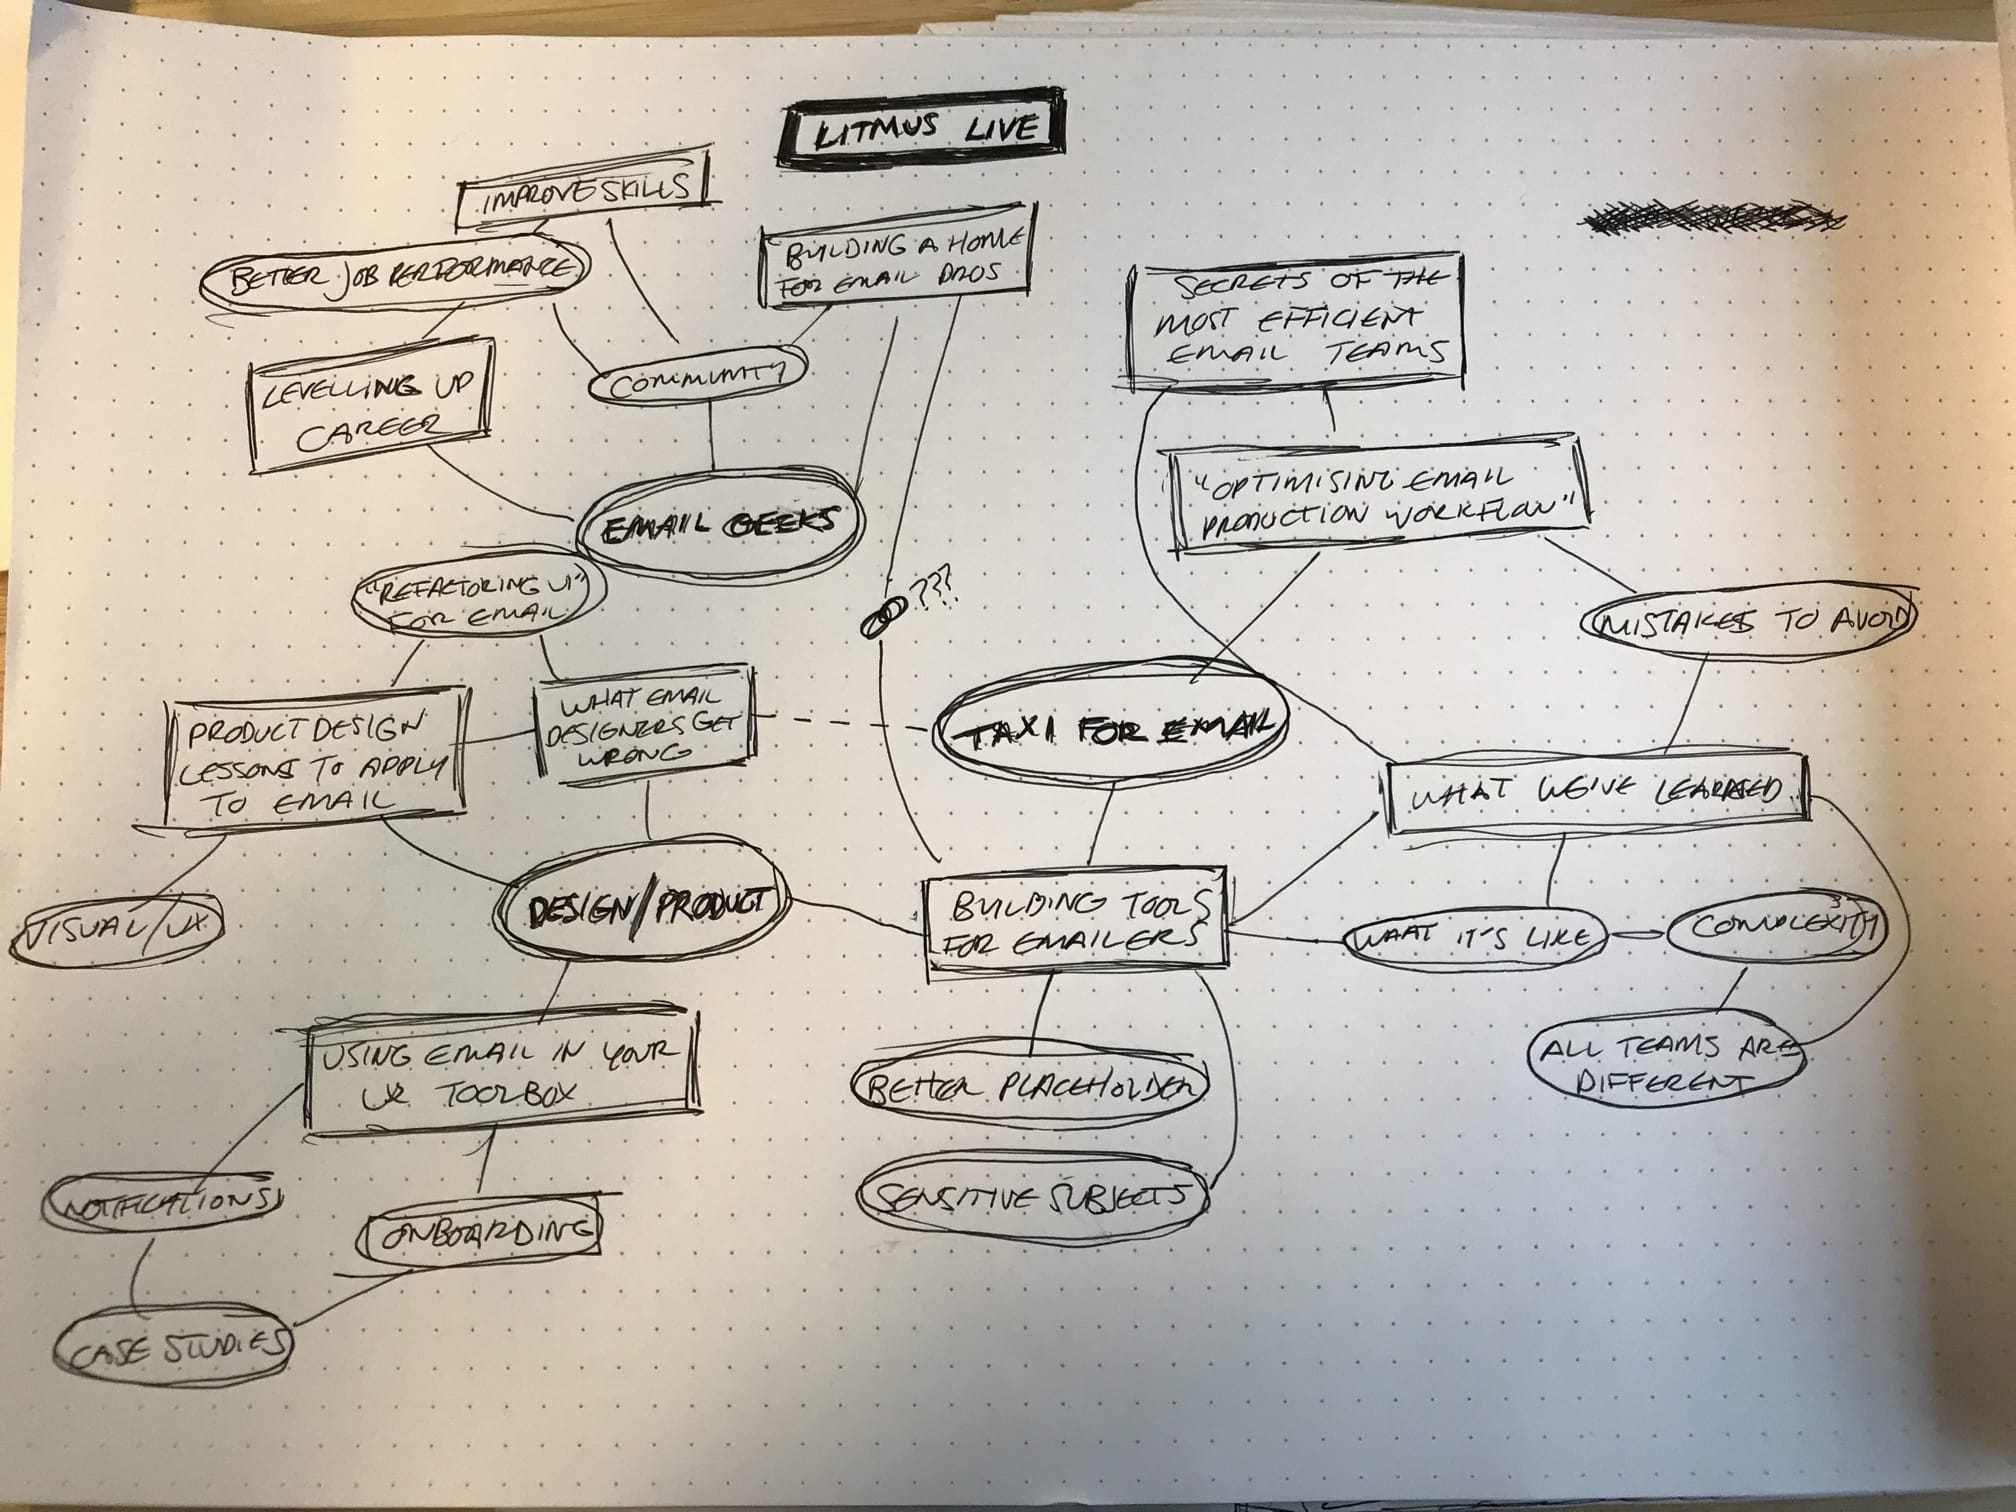 A notepad with a mindmap of possible speaking topics about email design and production